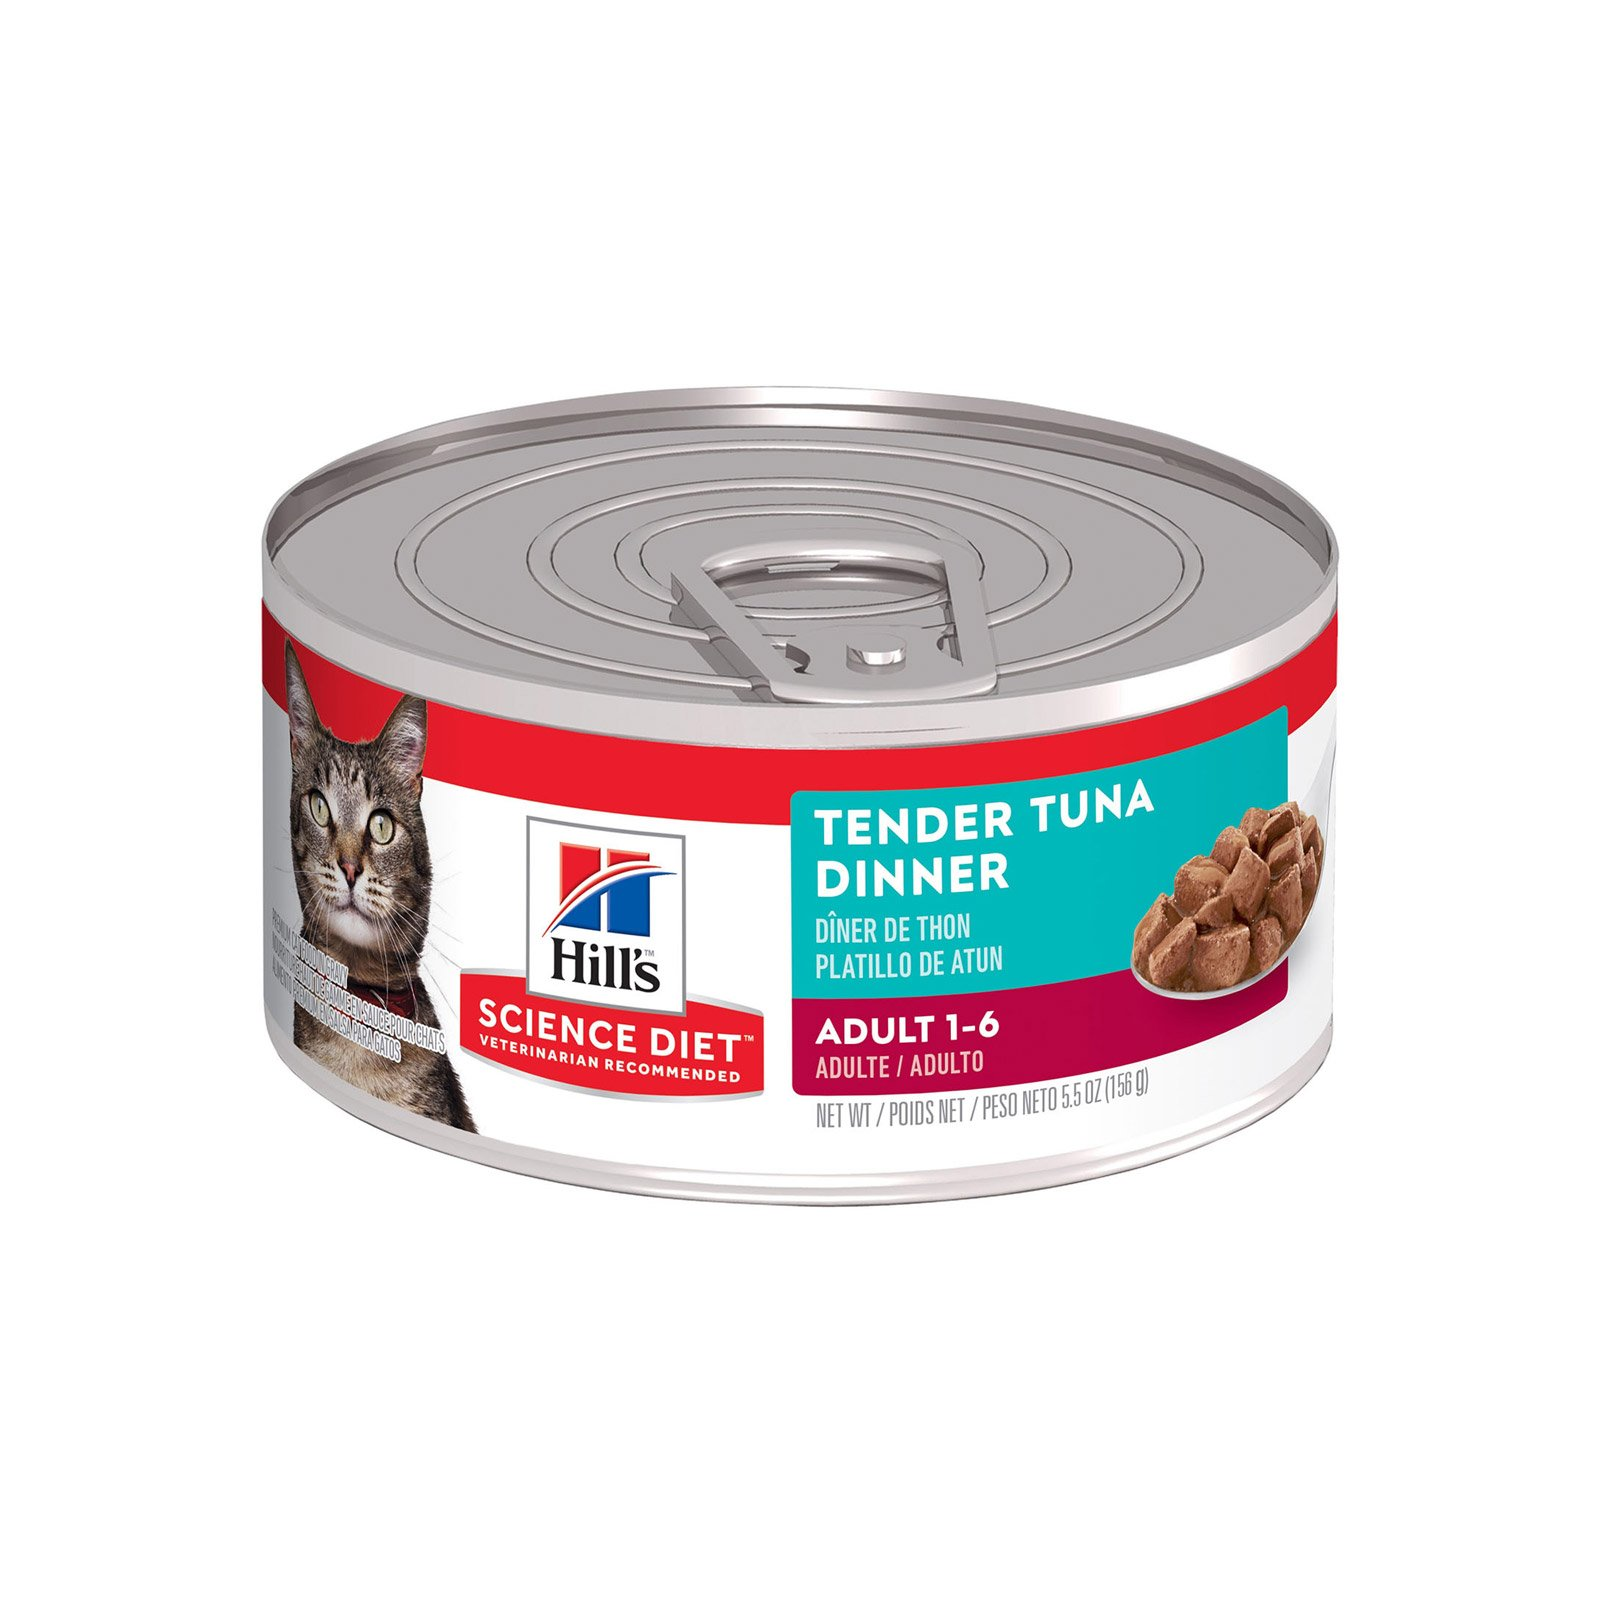 Hill's Science Diet Adult Tender Tuna Dinner Canned Wet Cat Food